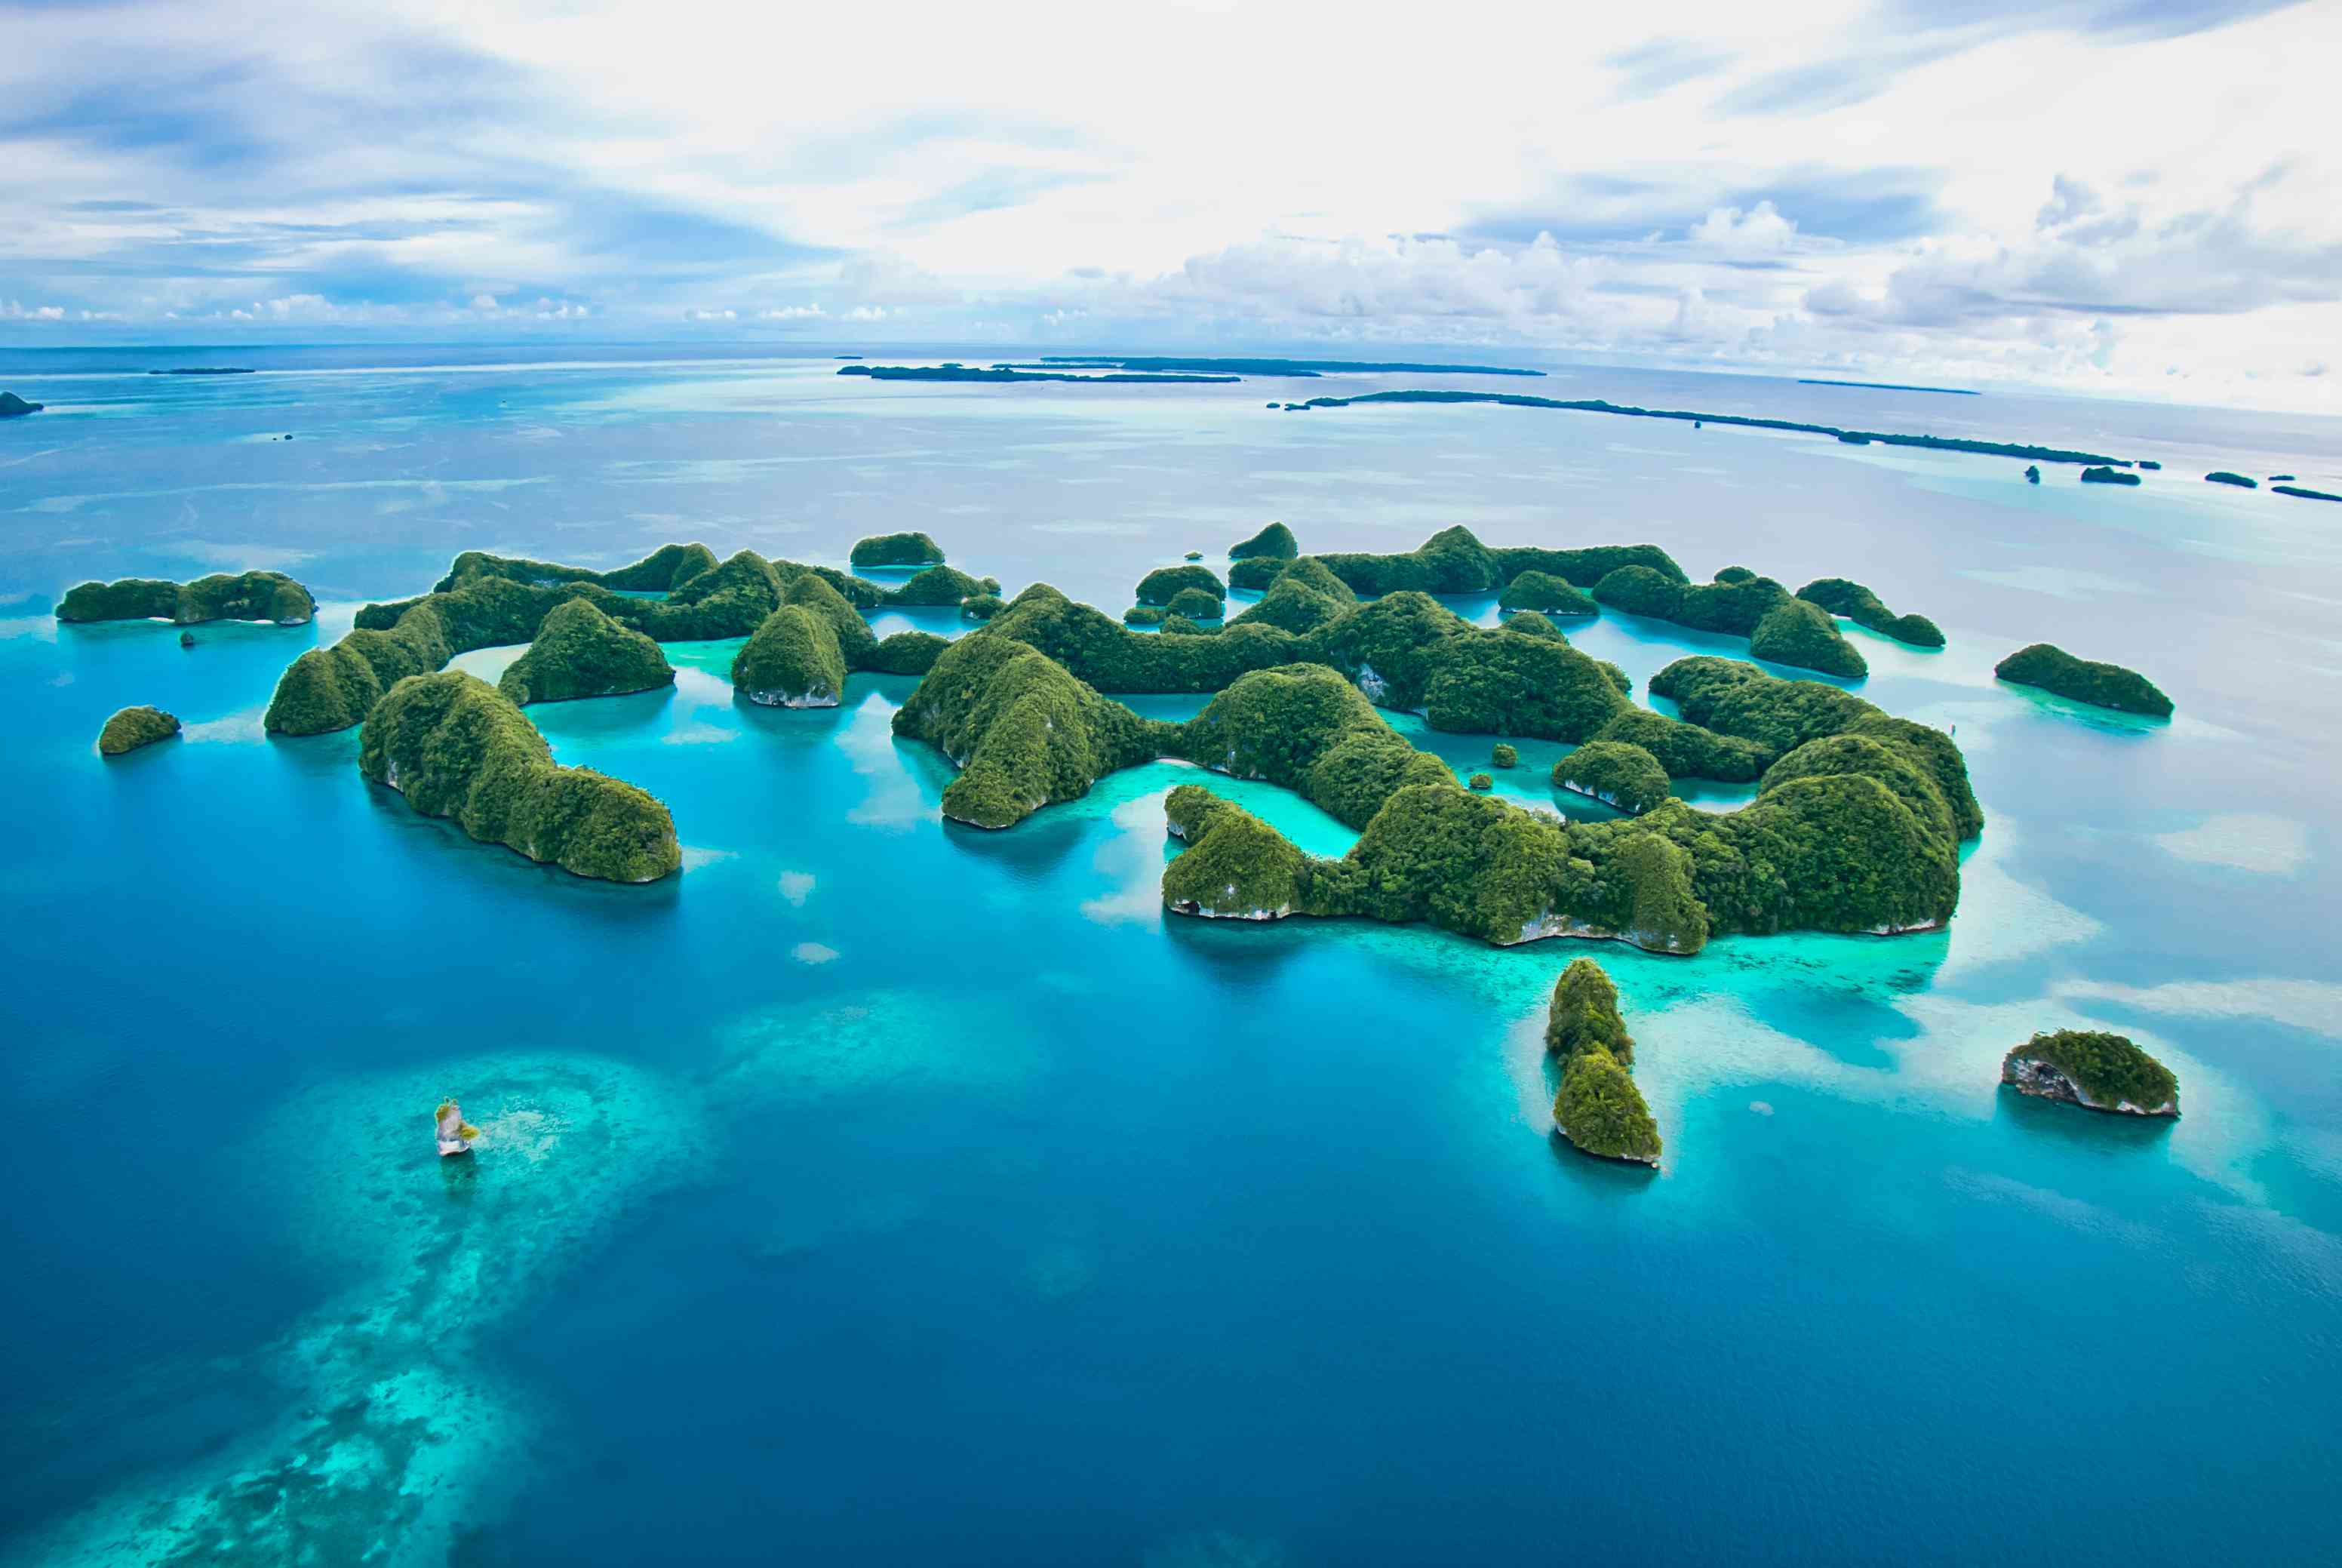 Island is Palau, where visitors must sign an eco pledge before entering the country